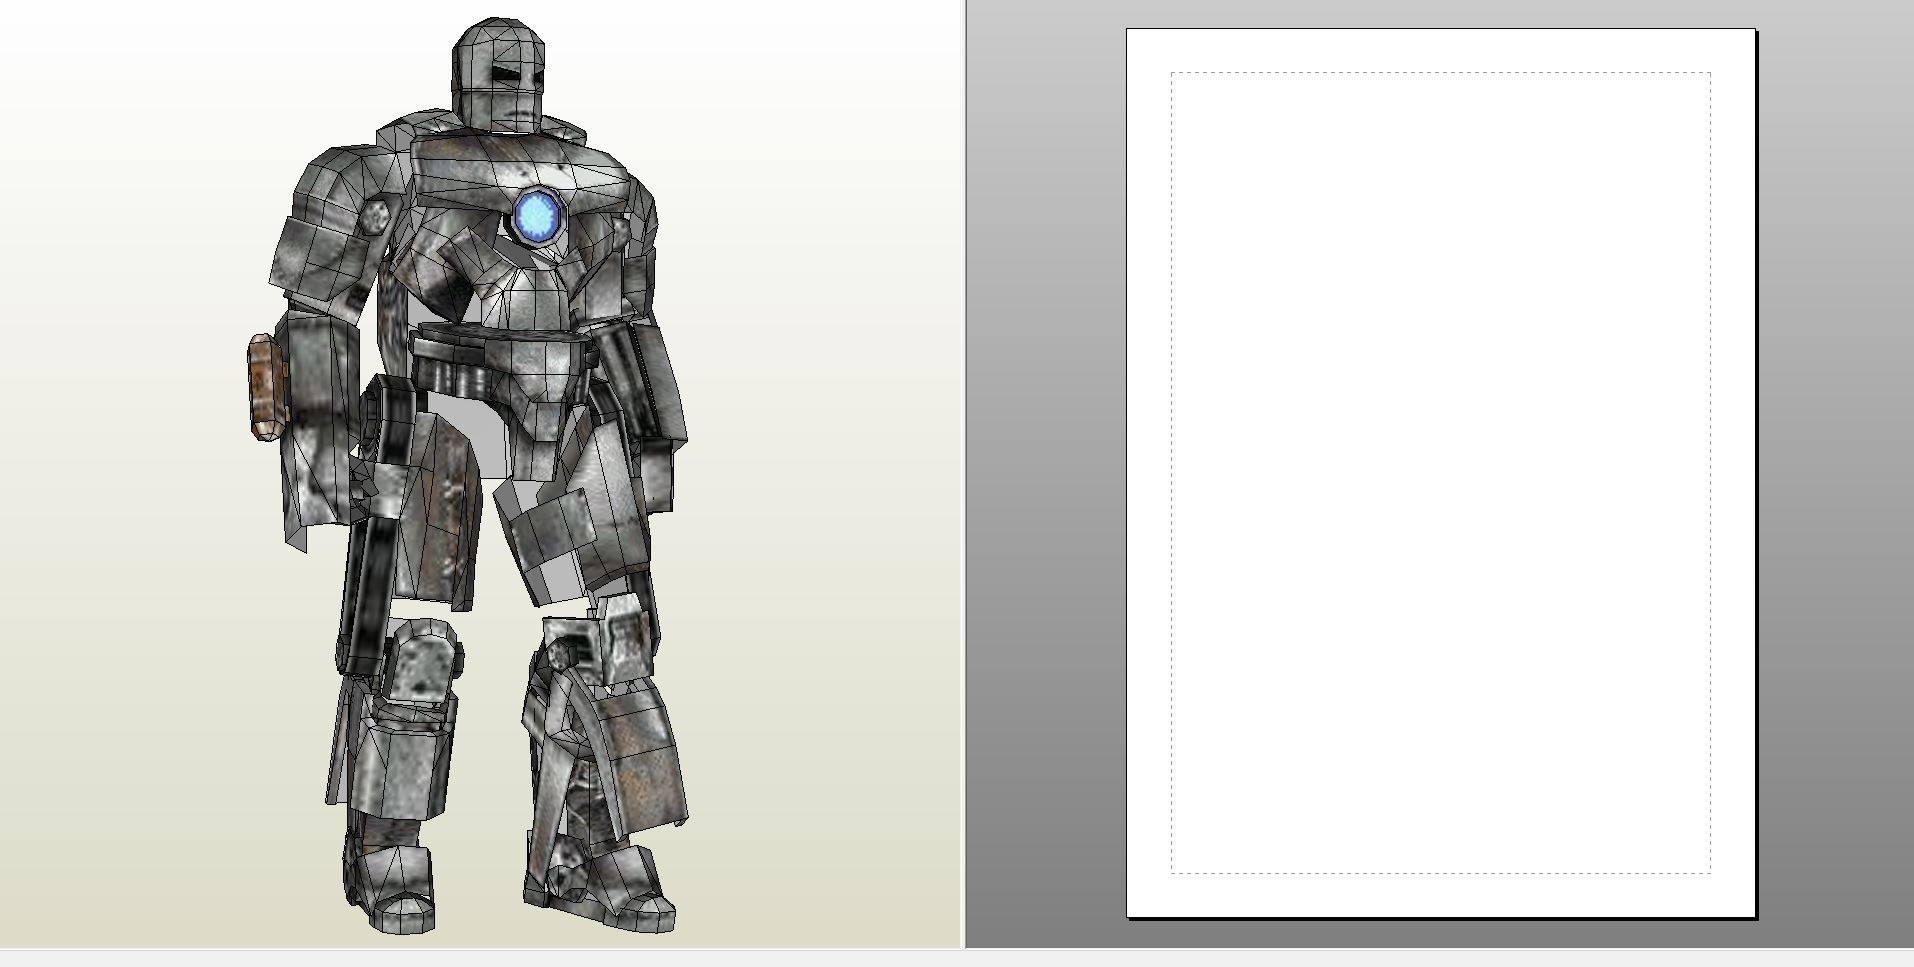 Foamcraft pdo file template for iron man mark 1 foam for Iron man foam armor templates